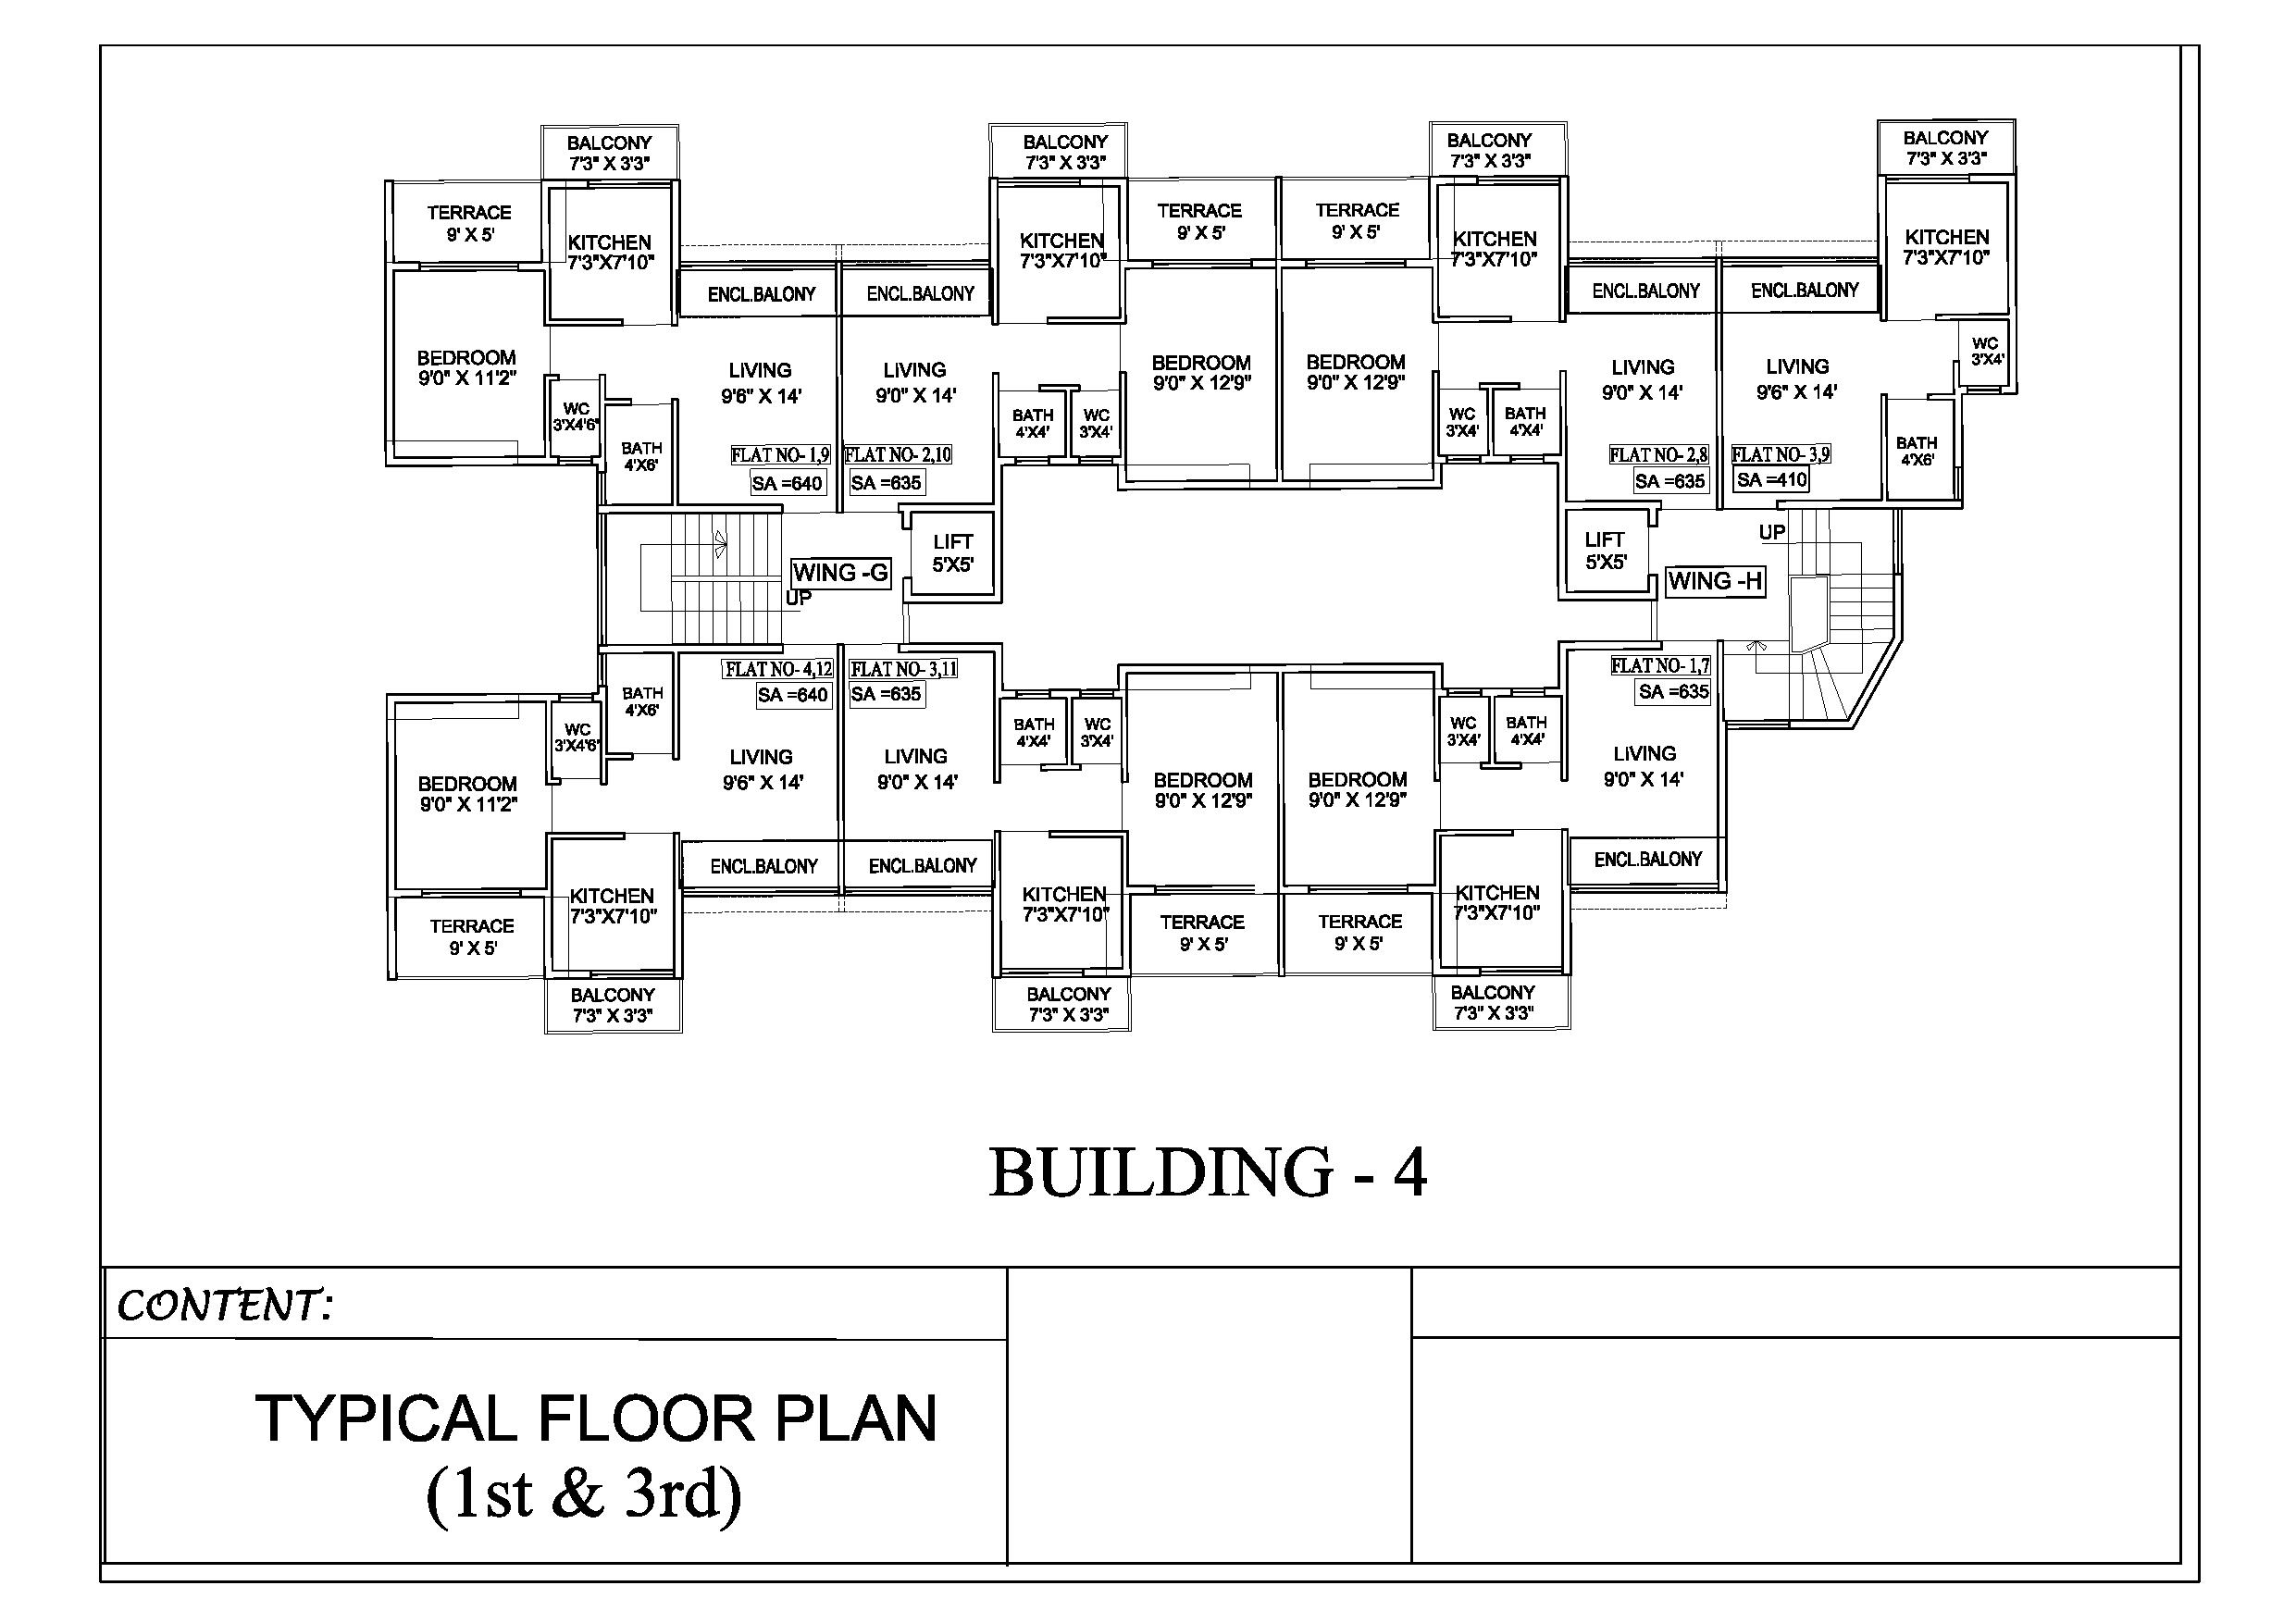 Typical Floor Plan A 1-3 Bldg. 4.jpg